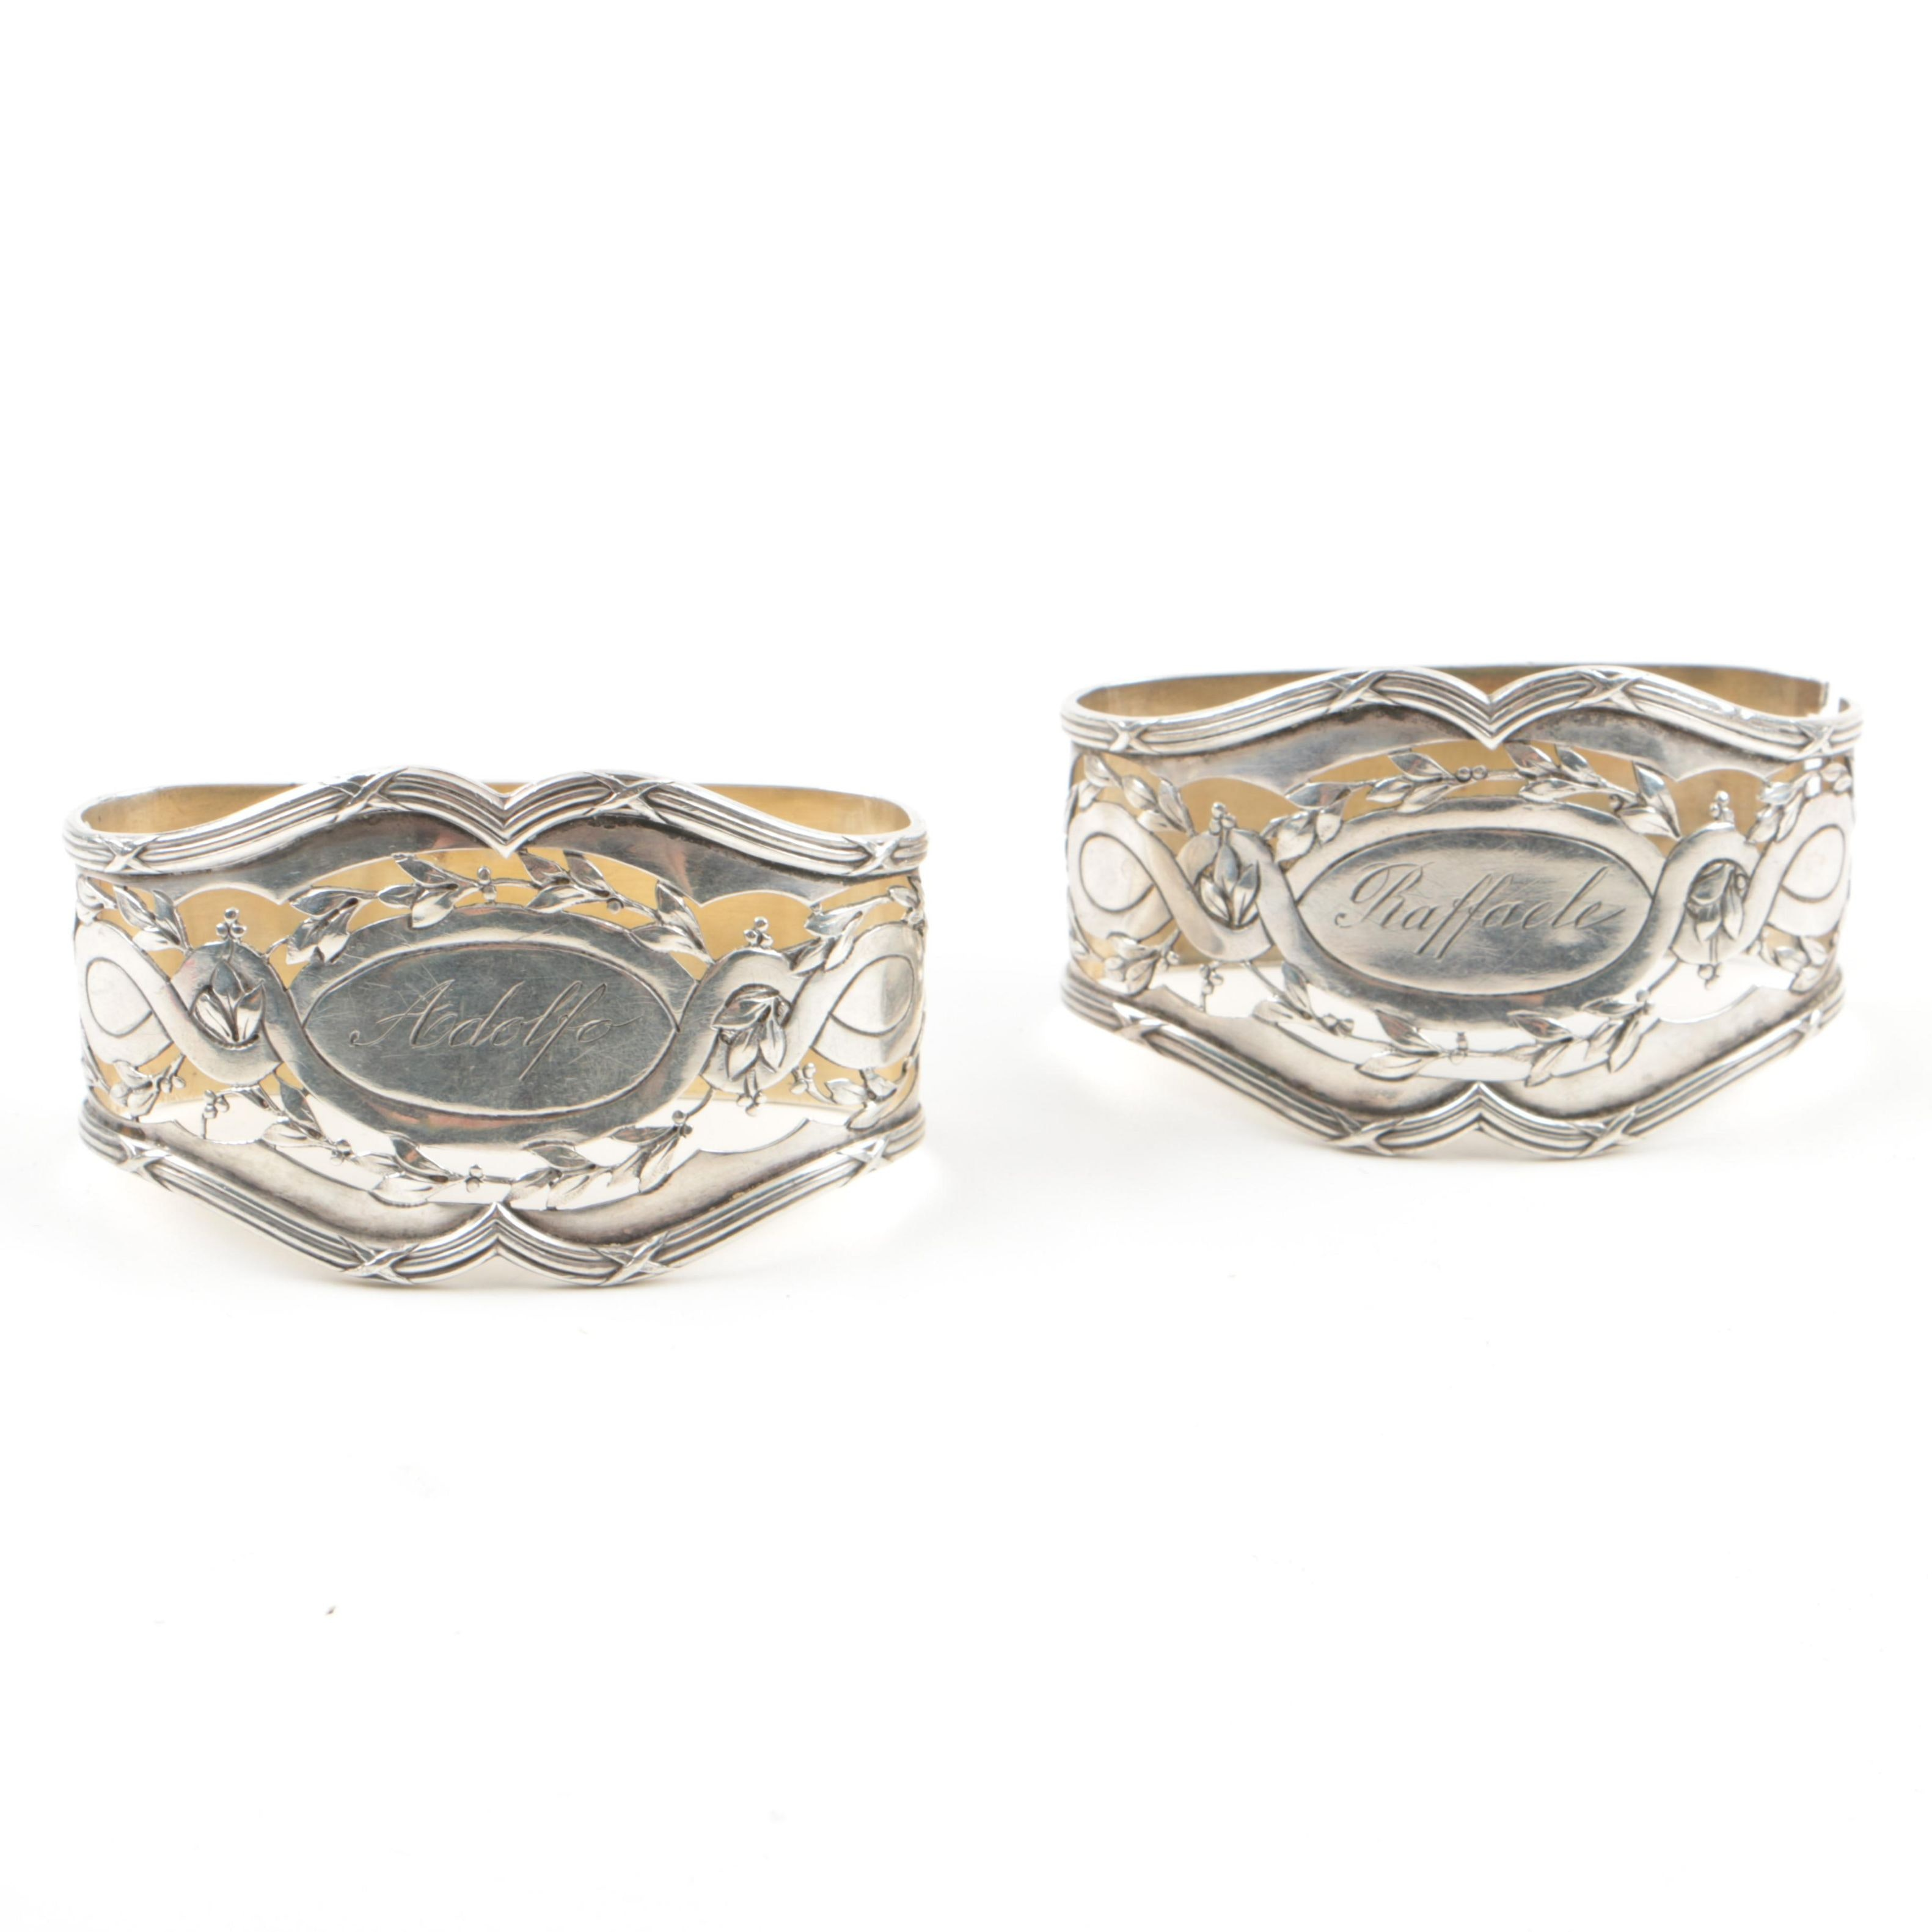 Two Early Twentieth Century French Sterling Silver Napkin Rings